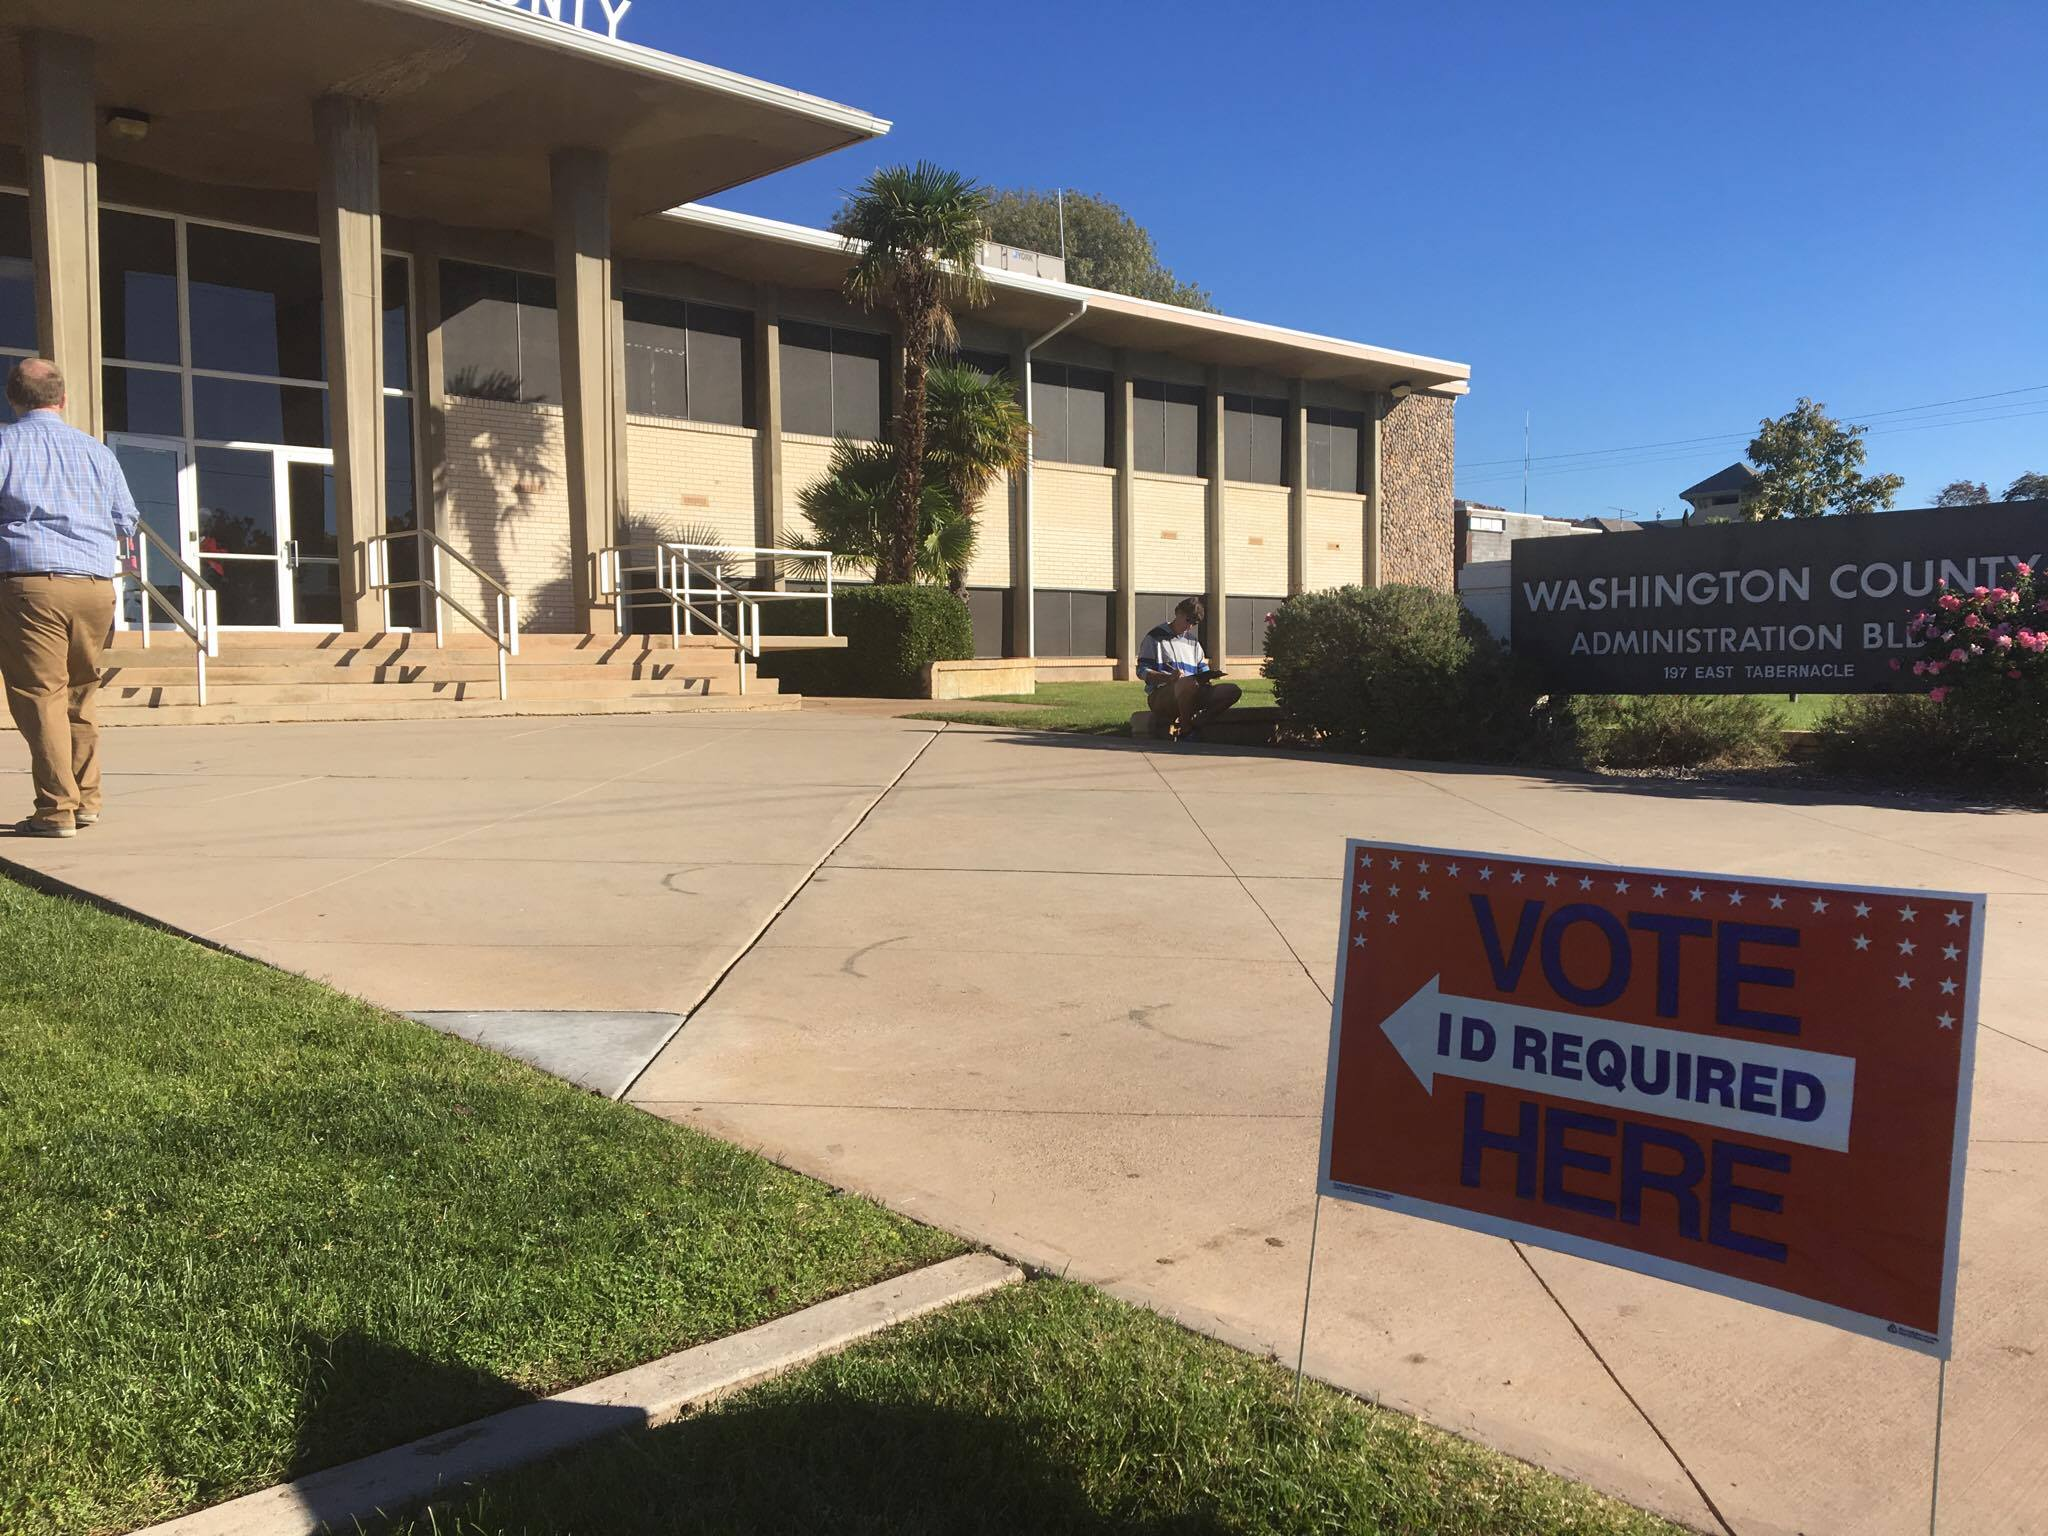 A voter goes into the Washington County Administration Building, 197 E. Tabernacle St. Tuesday morning. The electronic voting machines have been operational since polls opened. A poll worker told St. George News voters are coming to the location to vote in light of long lines and down machines at other locations in the county. St. George, Utah, Nov. 8, 2016 | Photo by Mori Kessler, St. George News